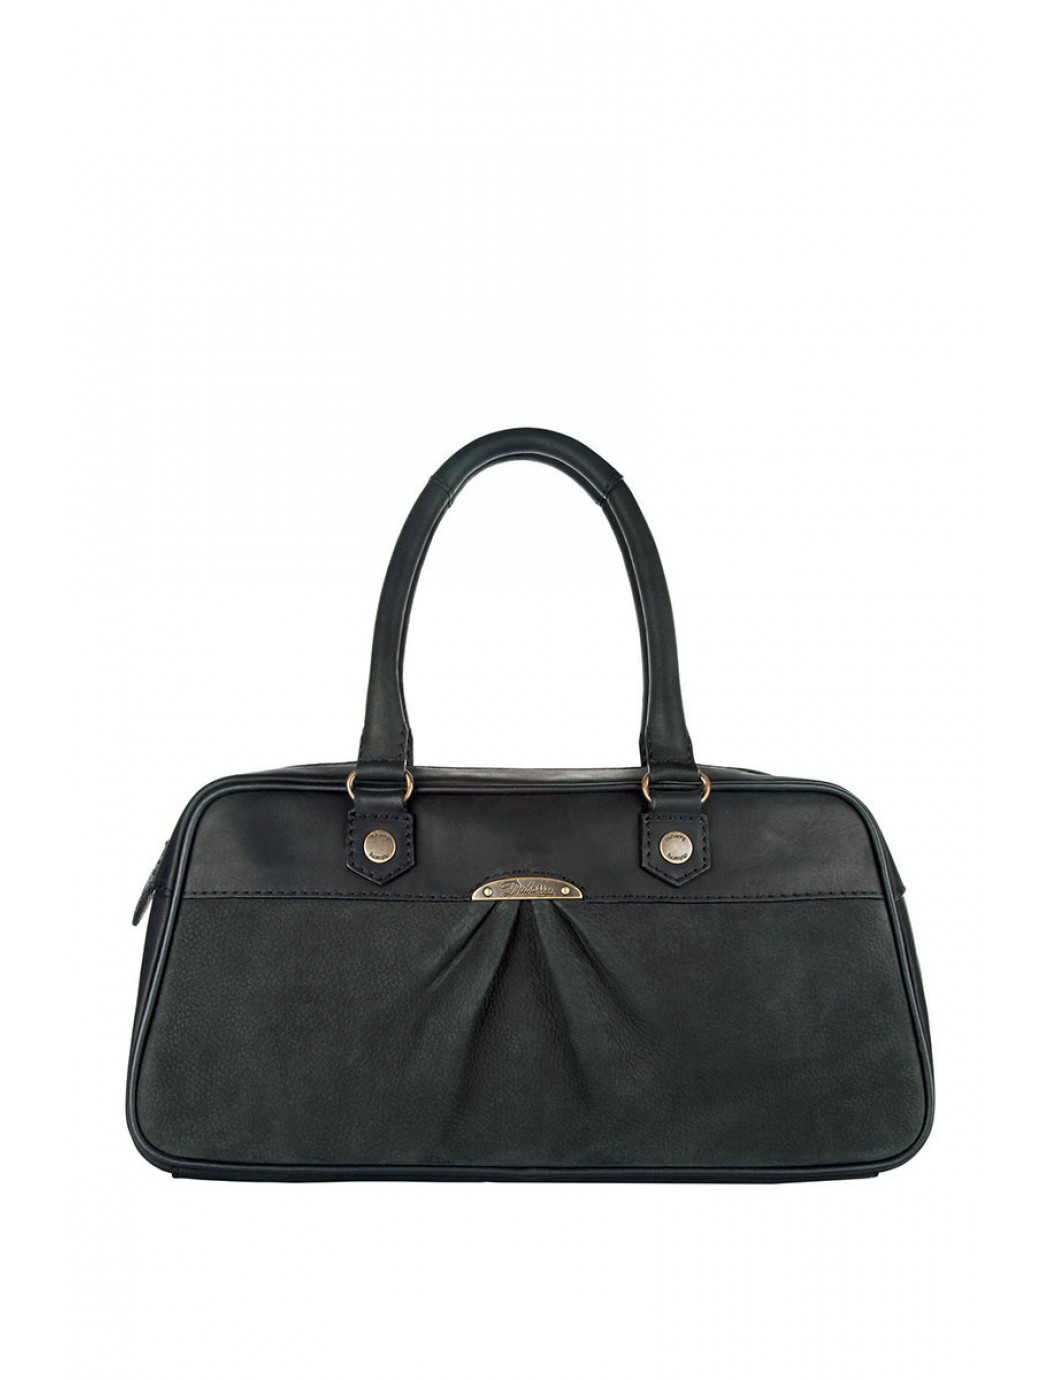 ross-womens-bags-luggage-black